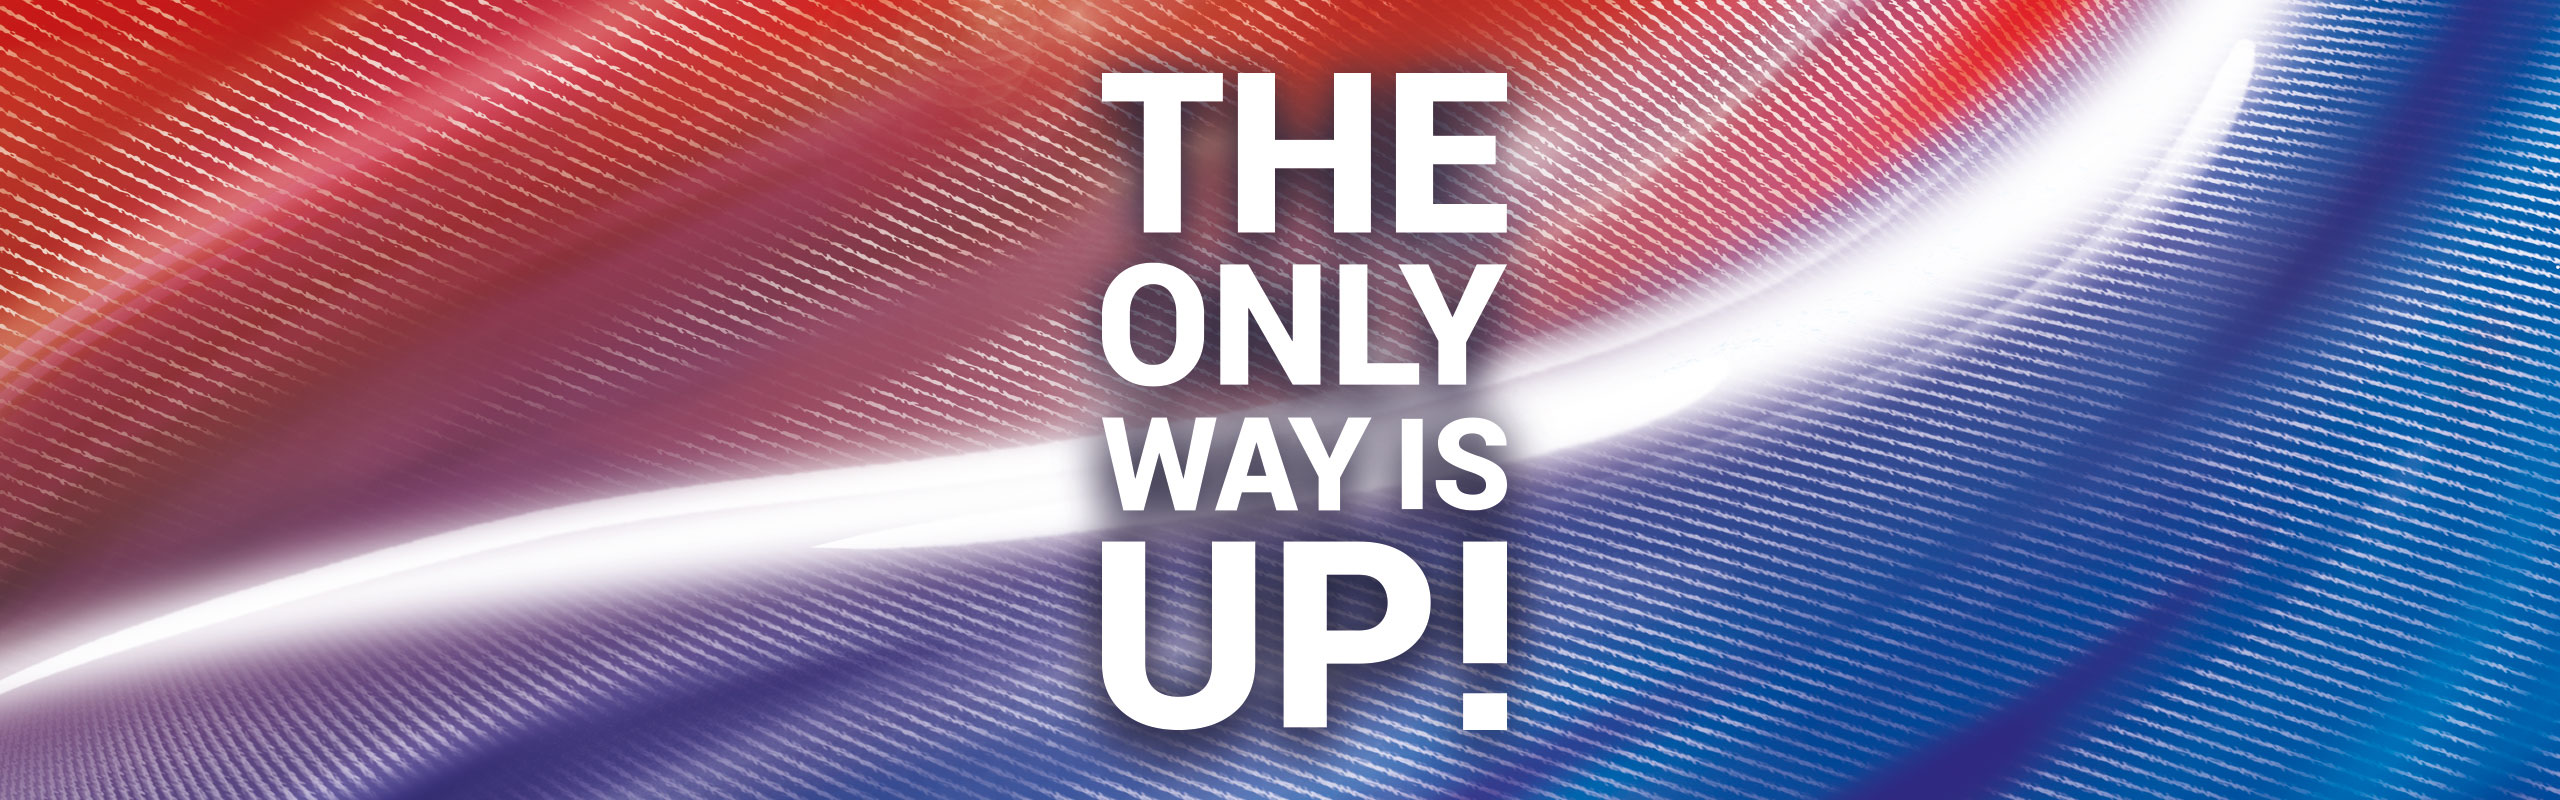 RE/MAX Convention 2019 - the only way is up